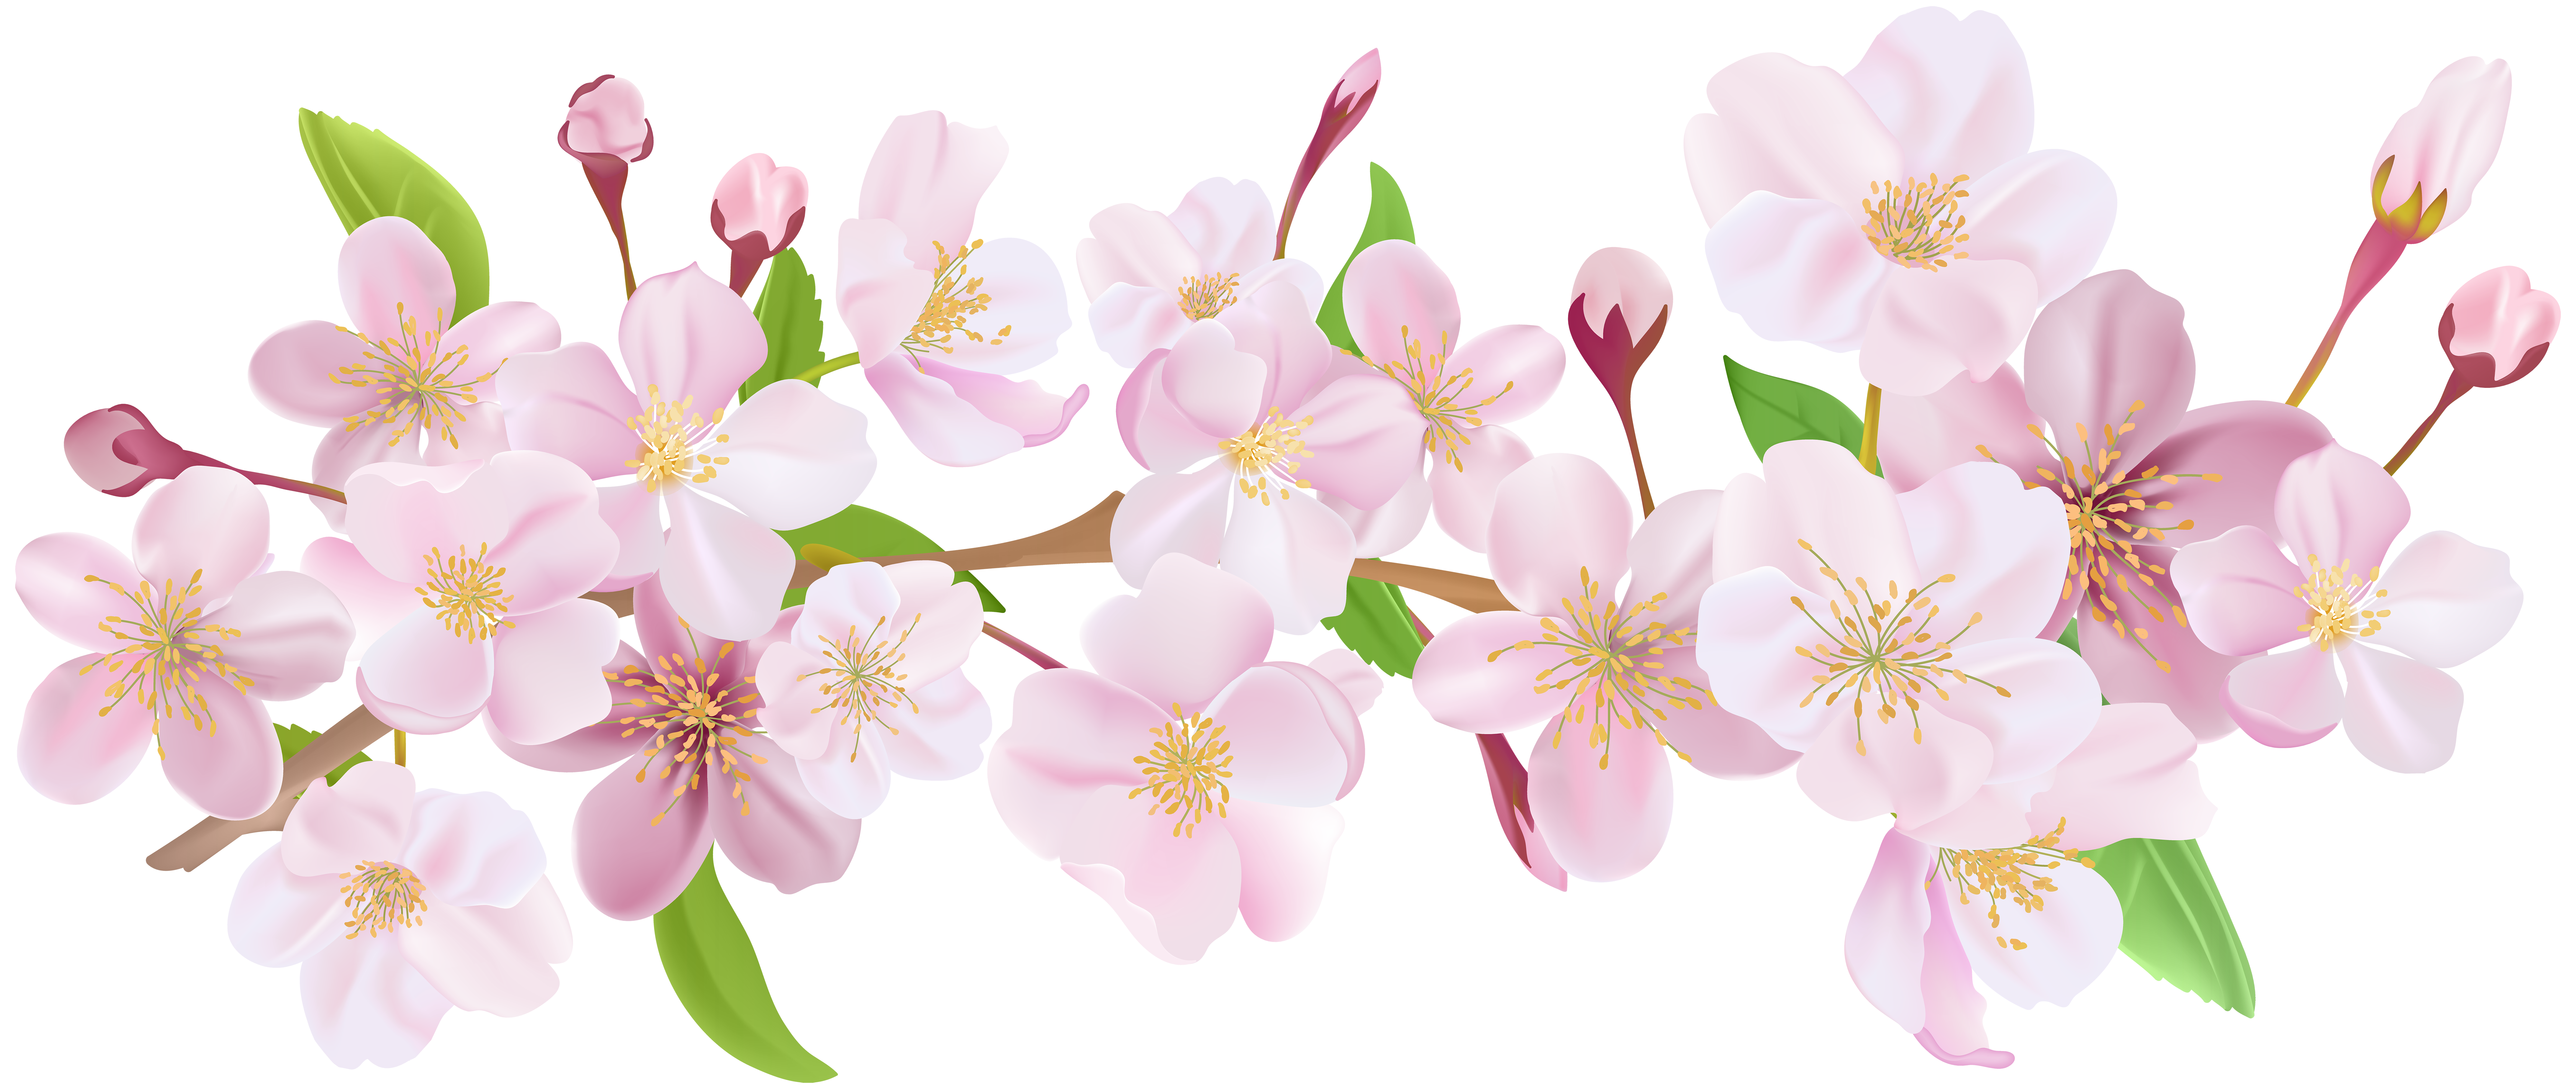 Cherry blossom flower png. Spring branch clip art